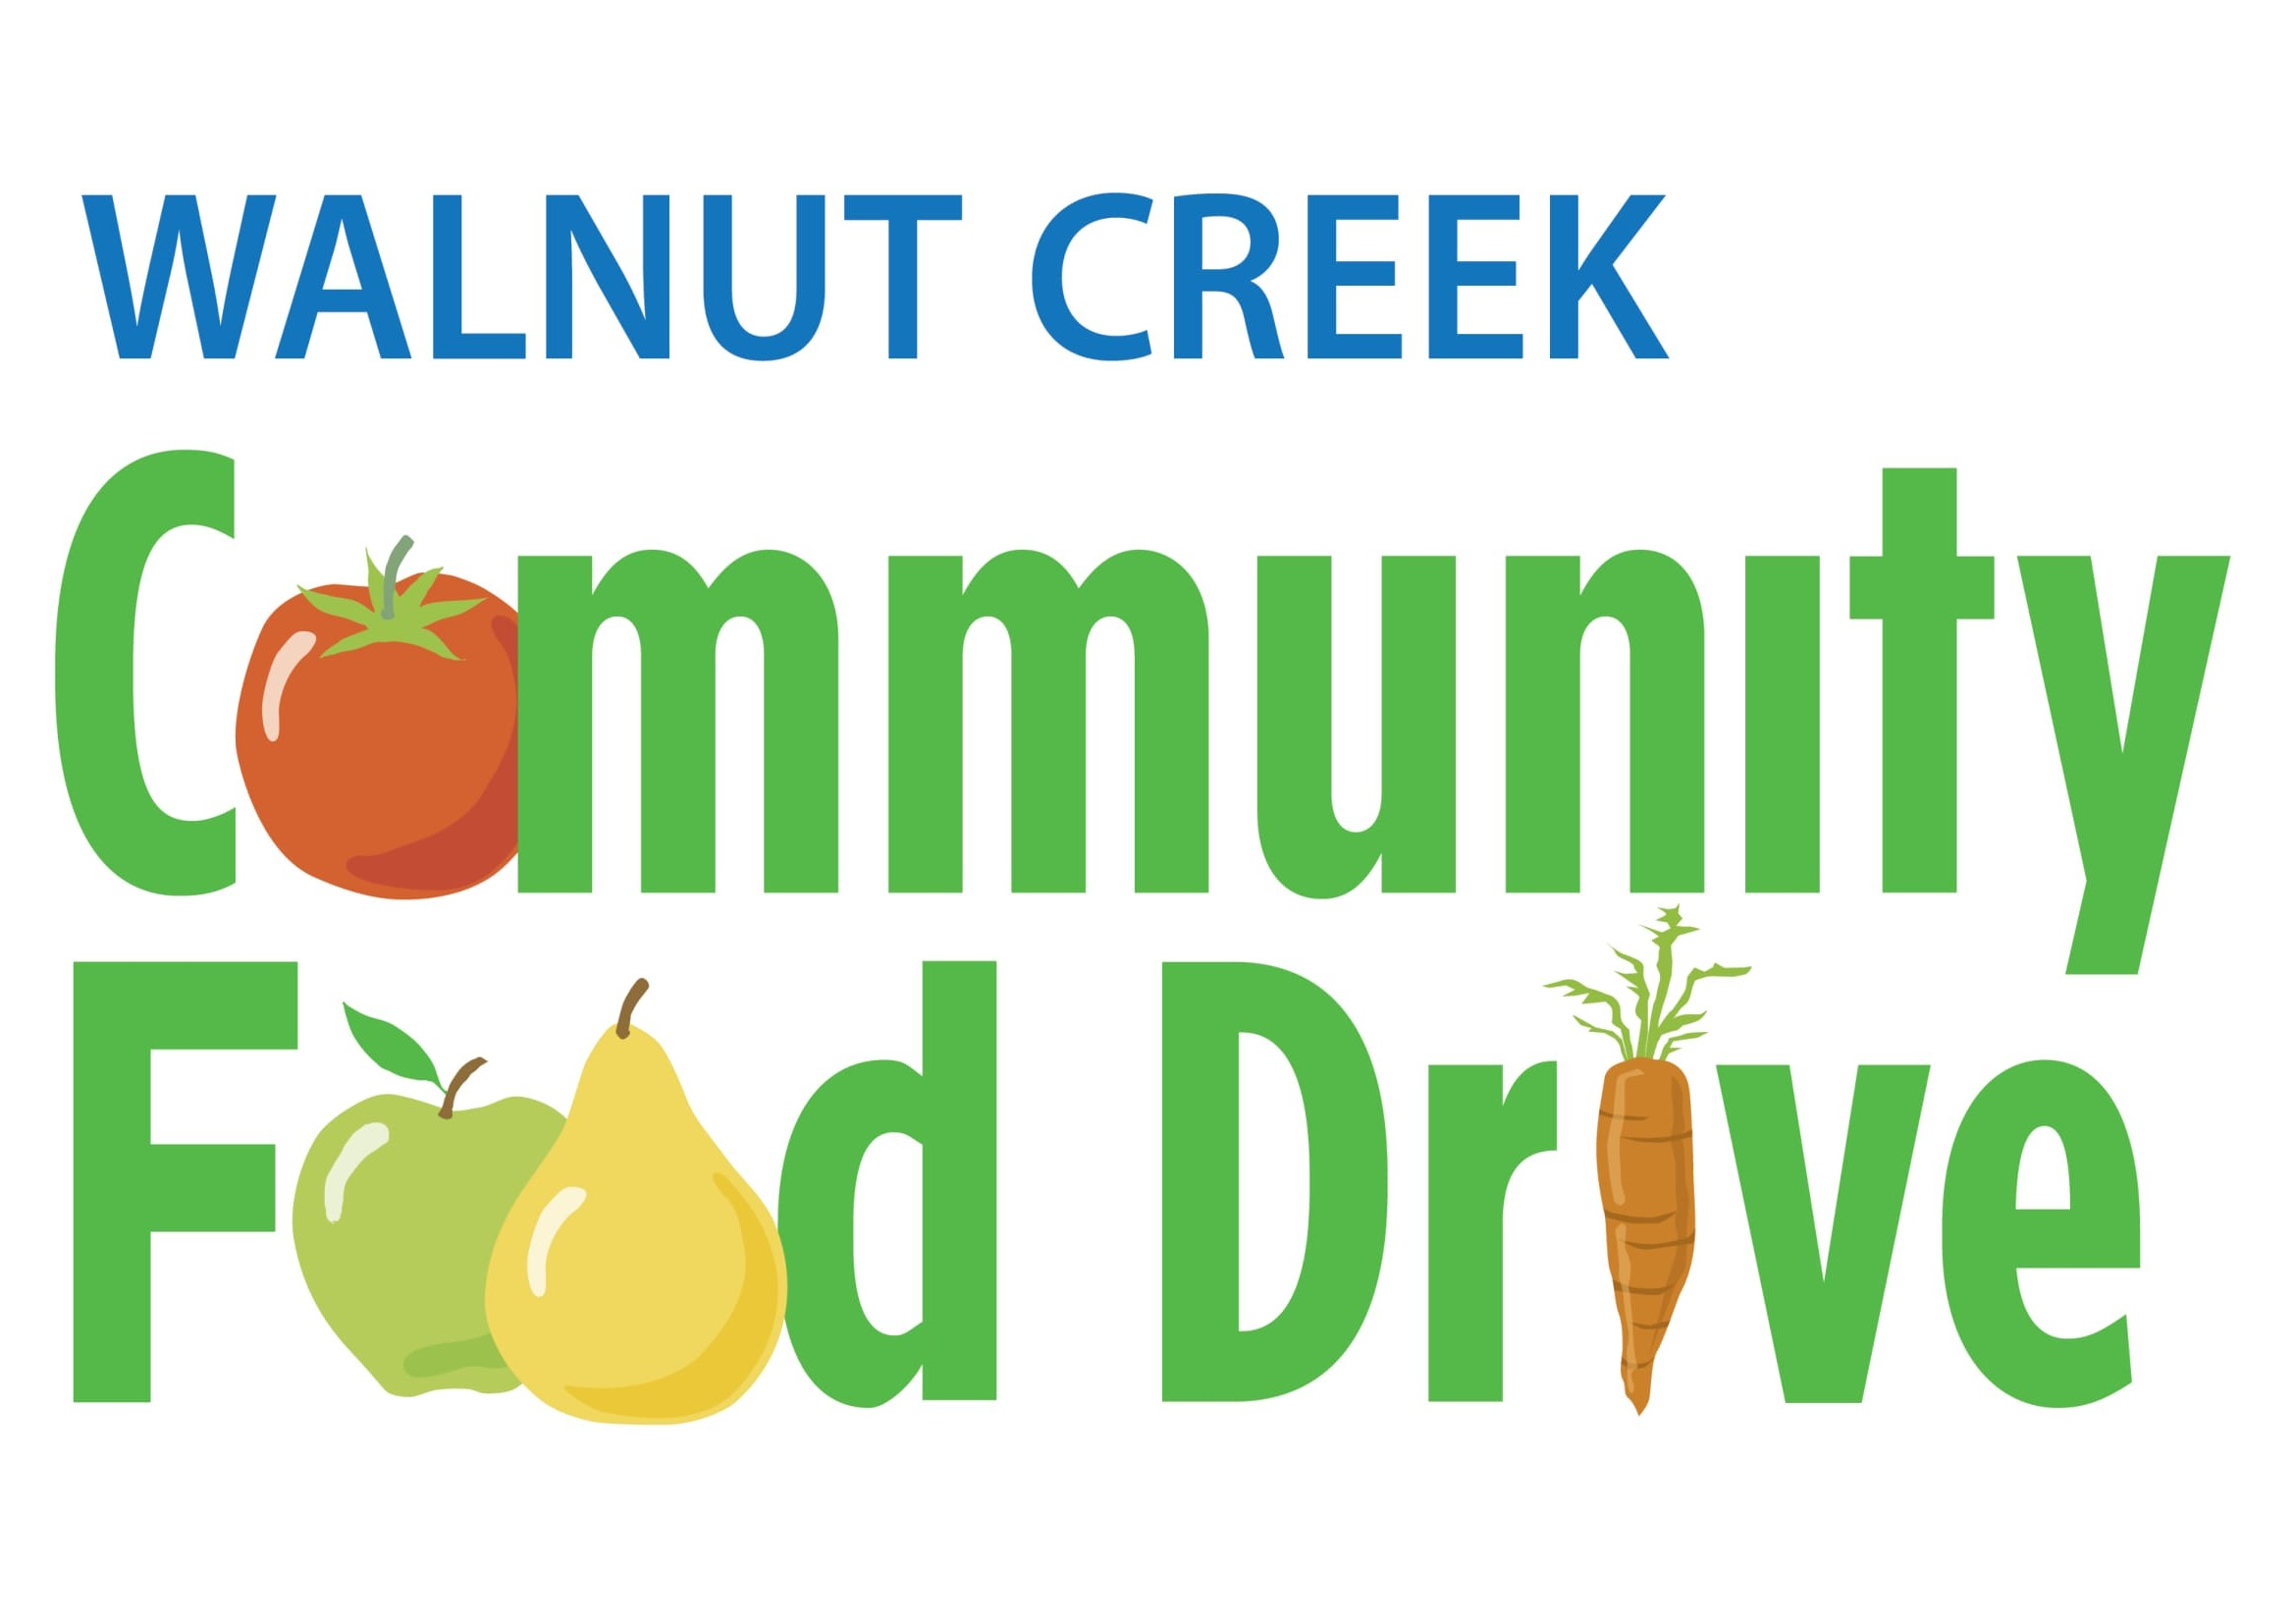 Citywide Food Drive: October 10, 2020 | Walnut Creek Magazine